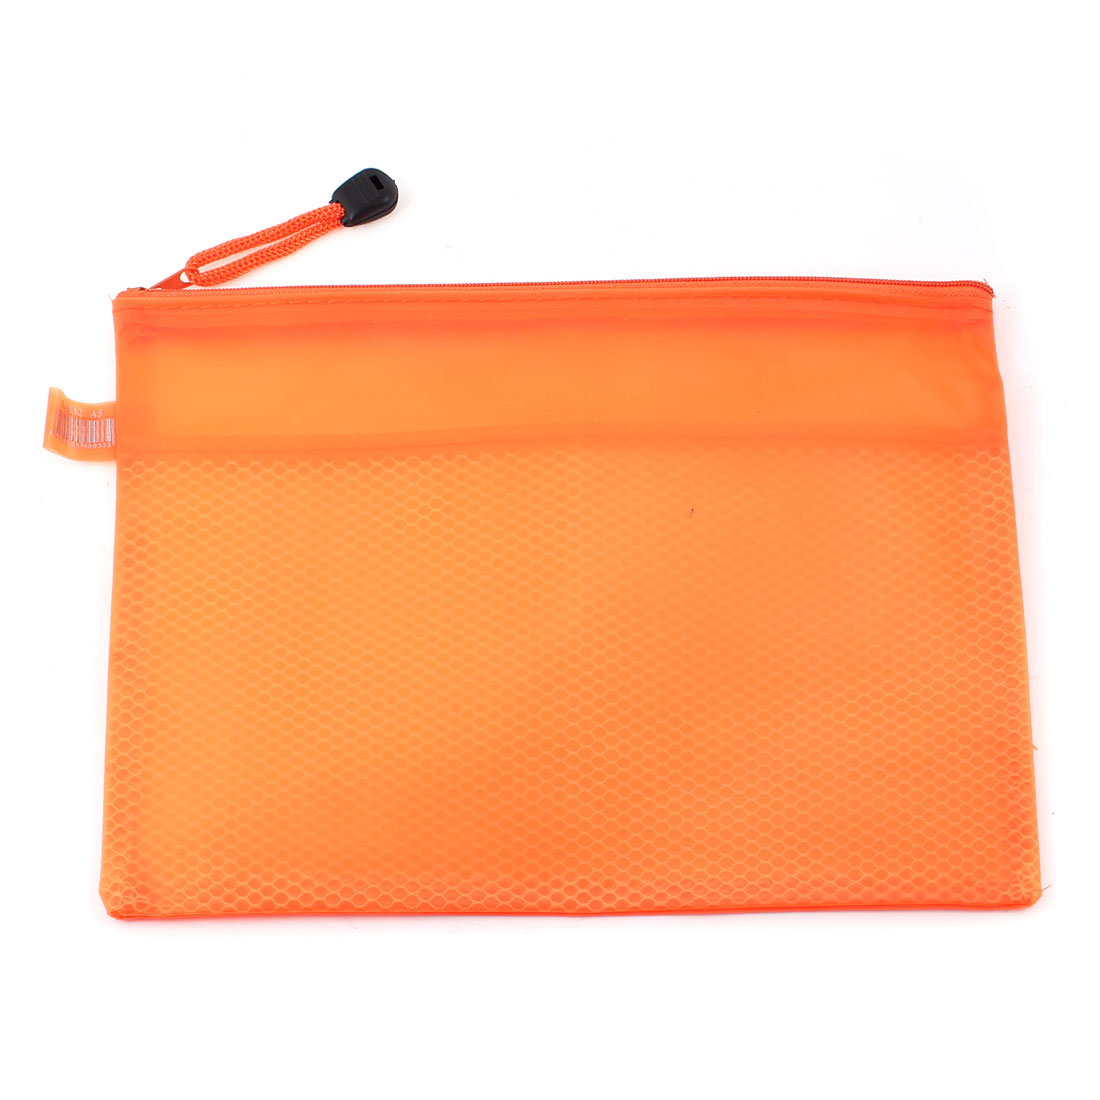 Orange Waterproof 2 Compartments Nylon Zippered A5 File Folder Bags